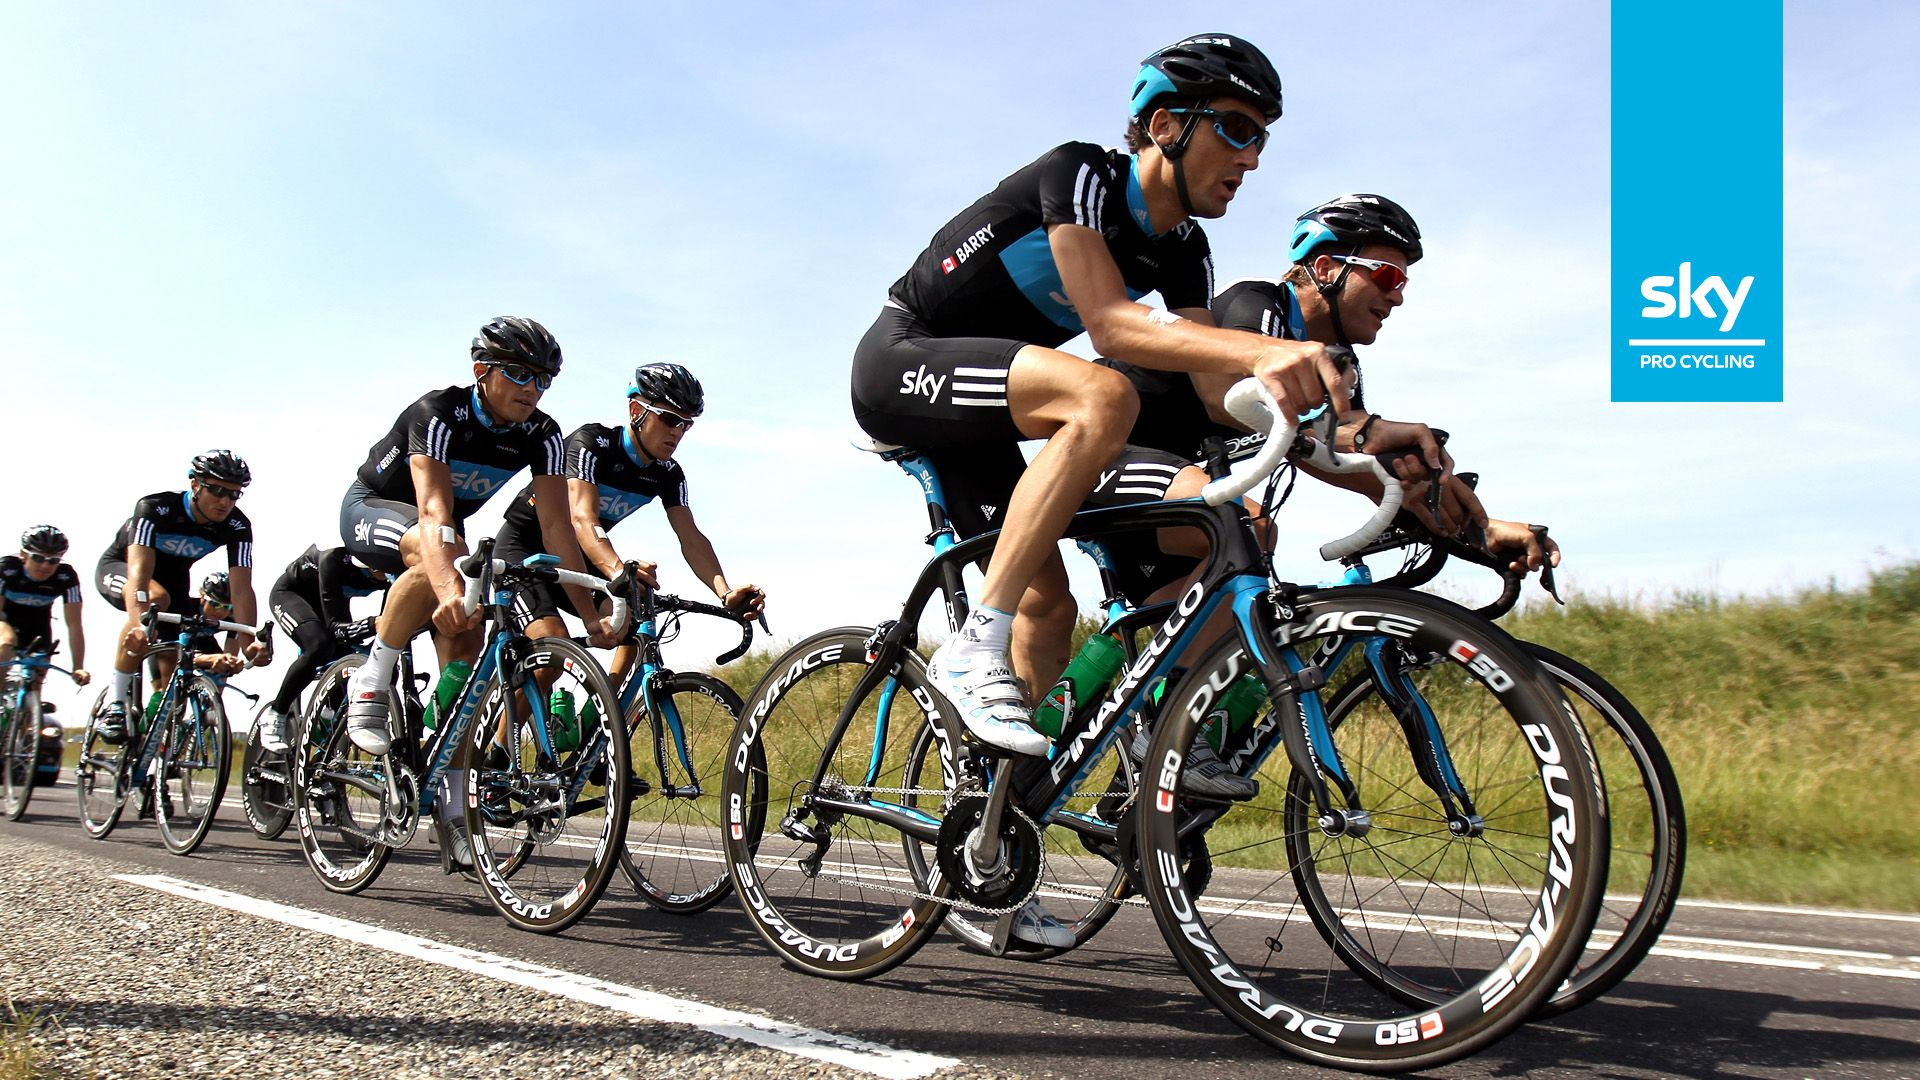 Team Sky Pro Cycling | road cycling | Pinterest